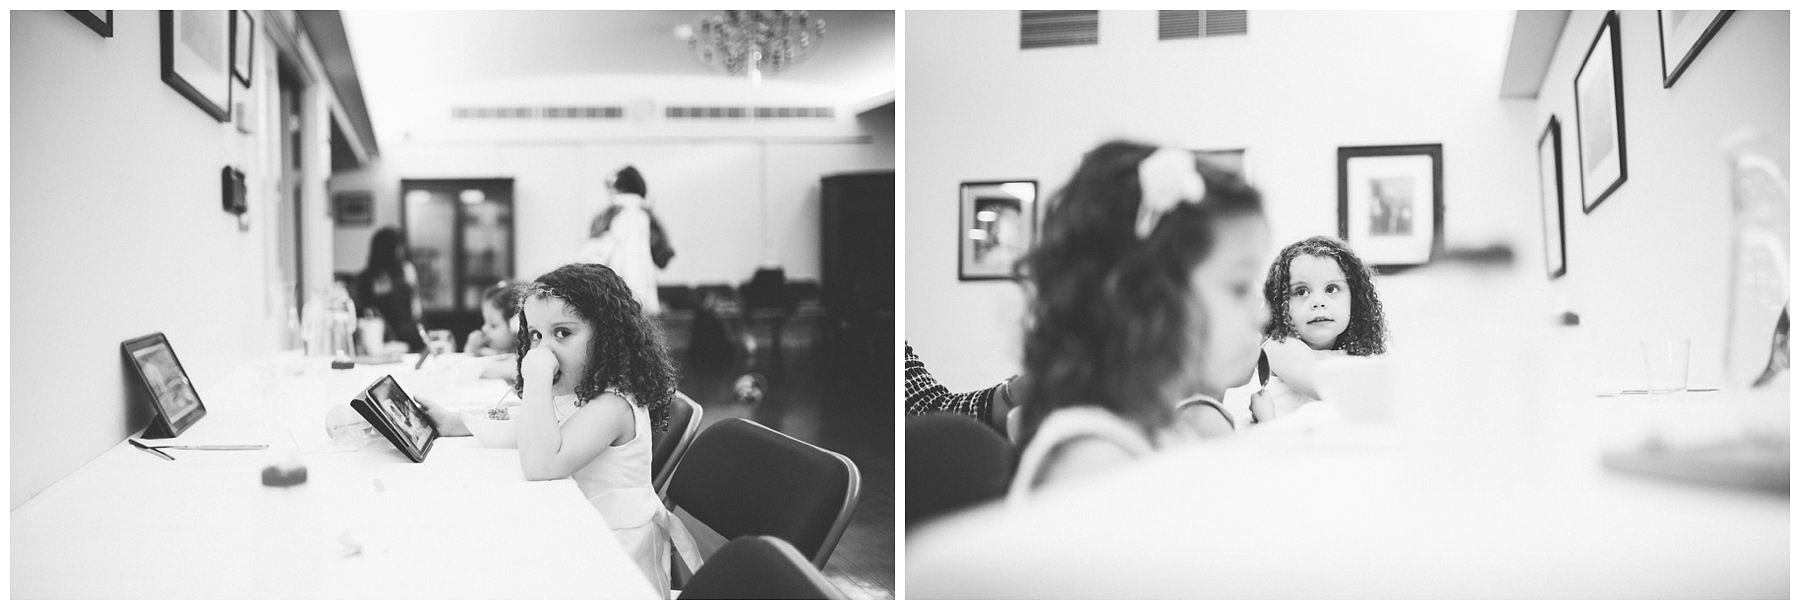 Bevis_Marks_Synagogue_Wedding_Photography_0103